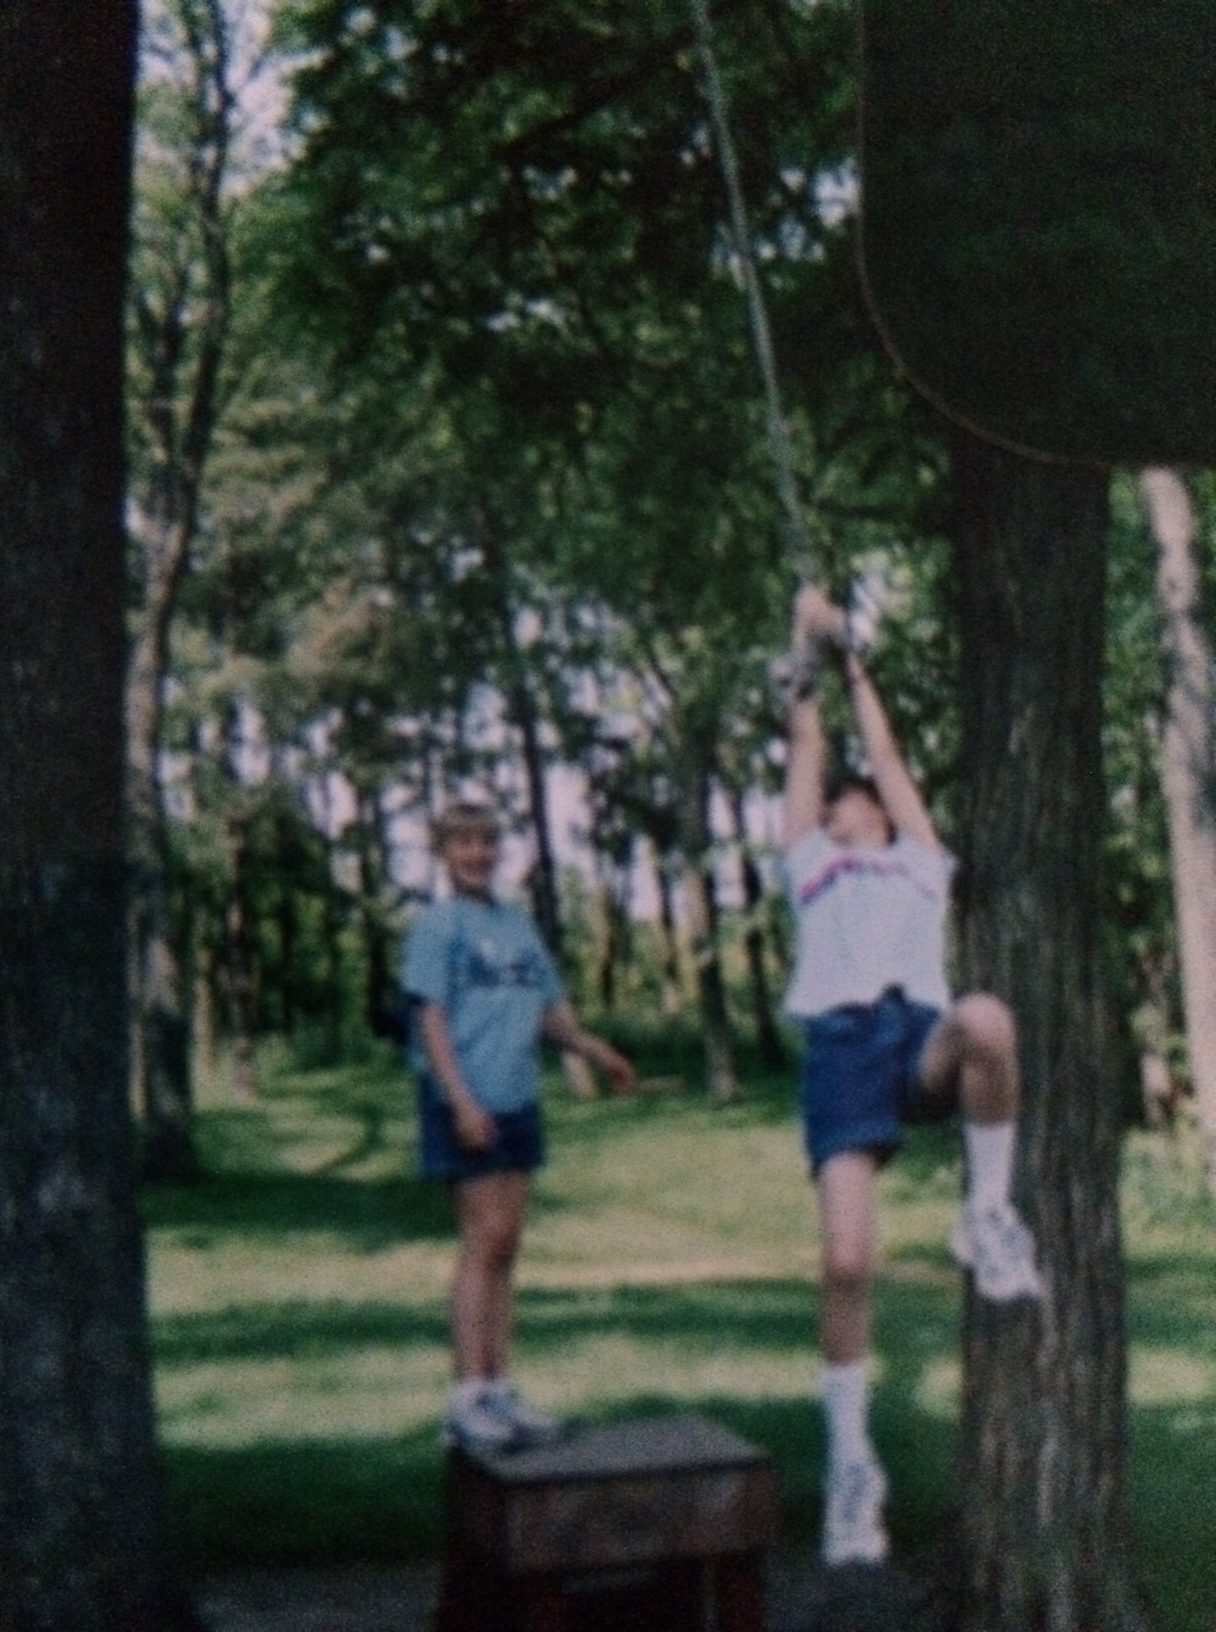 Here's me attempting to swing on this tree rope swing thing. Rachel's in the back, probably going, 'Oh dear God I really hope she doesn't kill herself.'